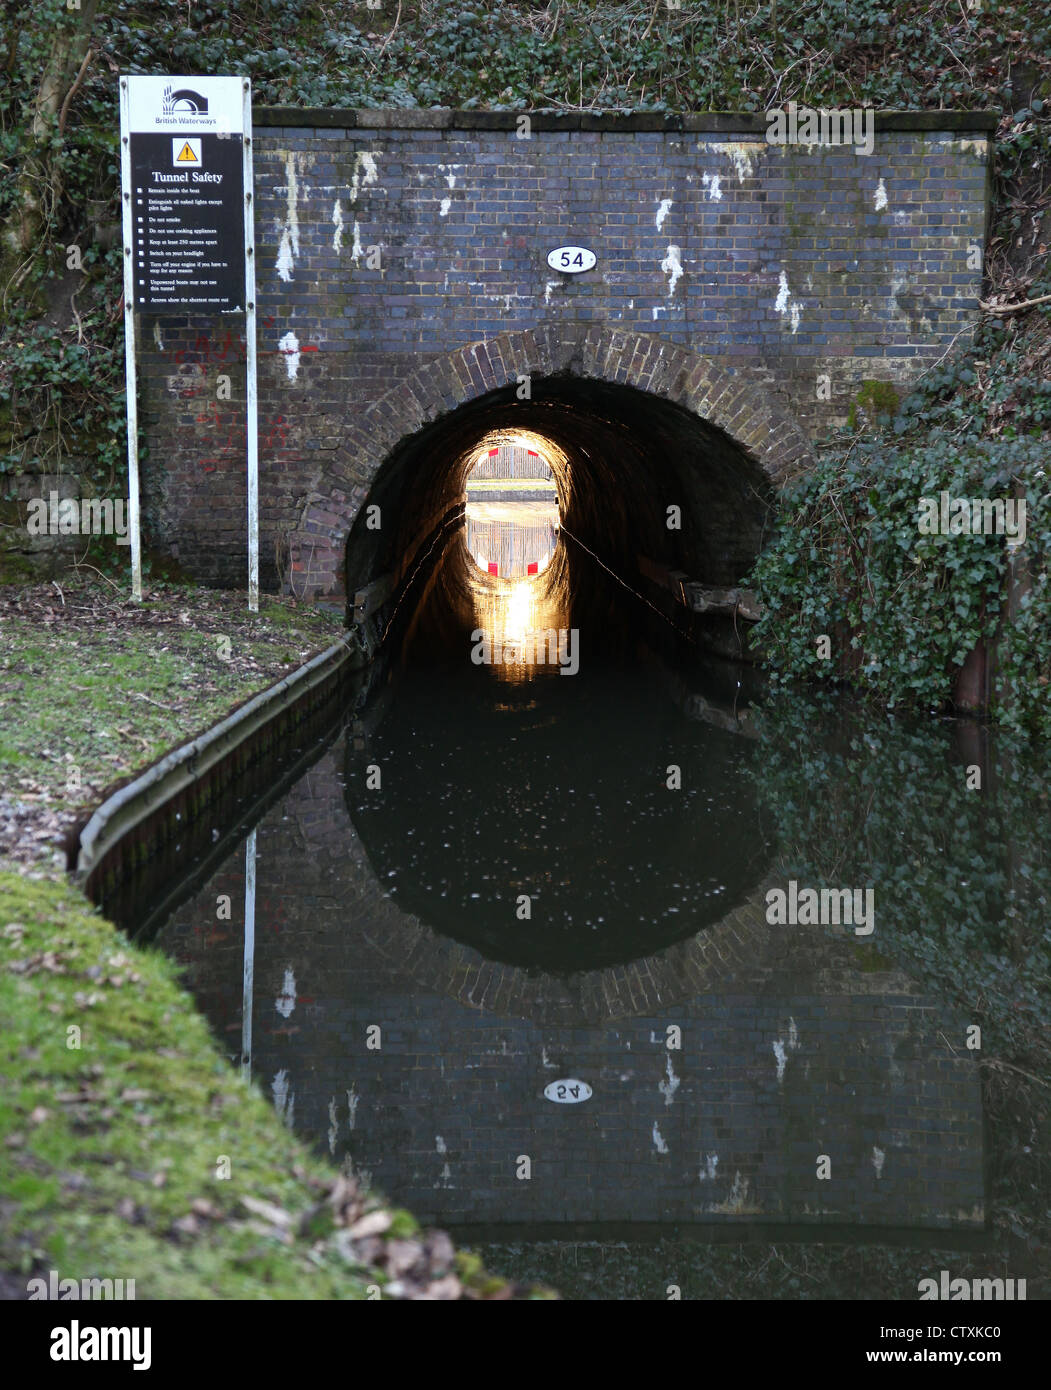 Froghall Tunnel on the Caldon canal Churnet Valley near Froghall Staffordshire - Stock Image